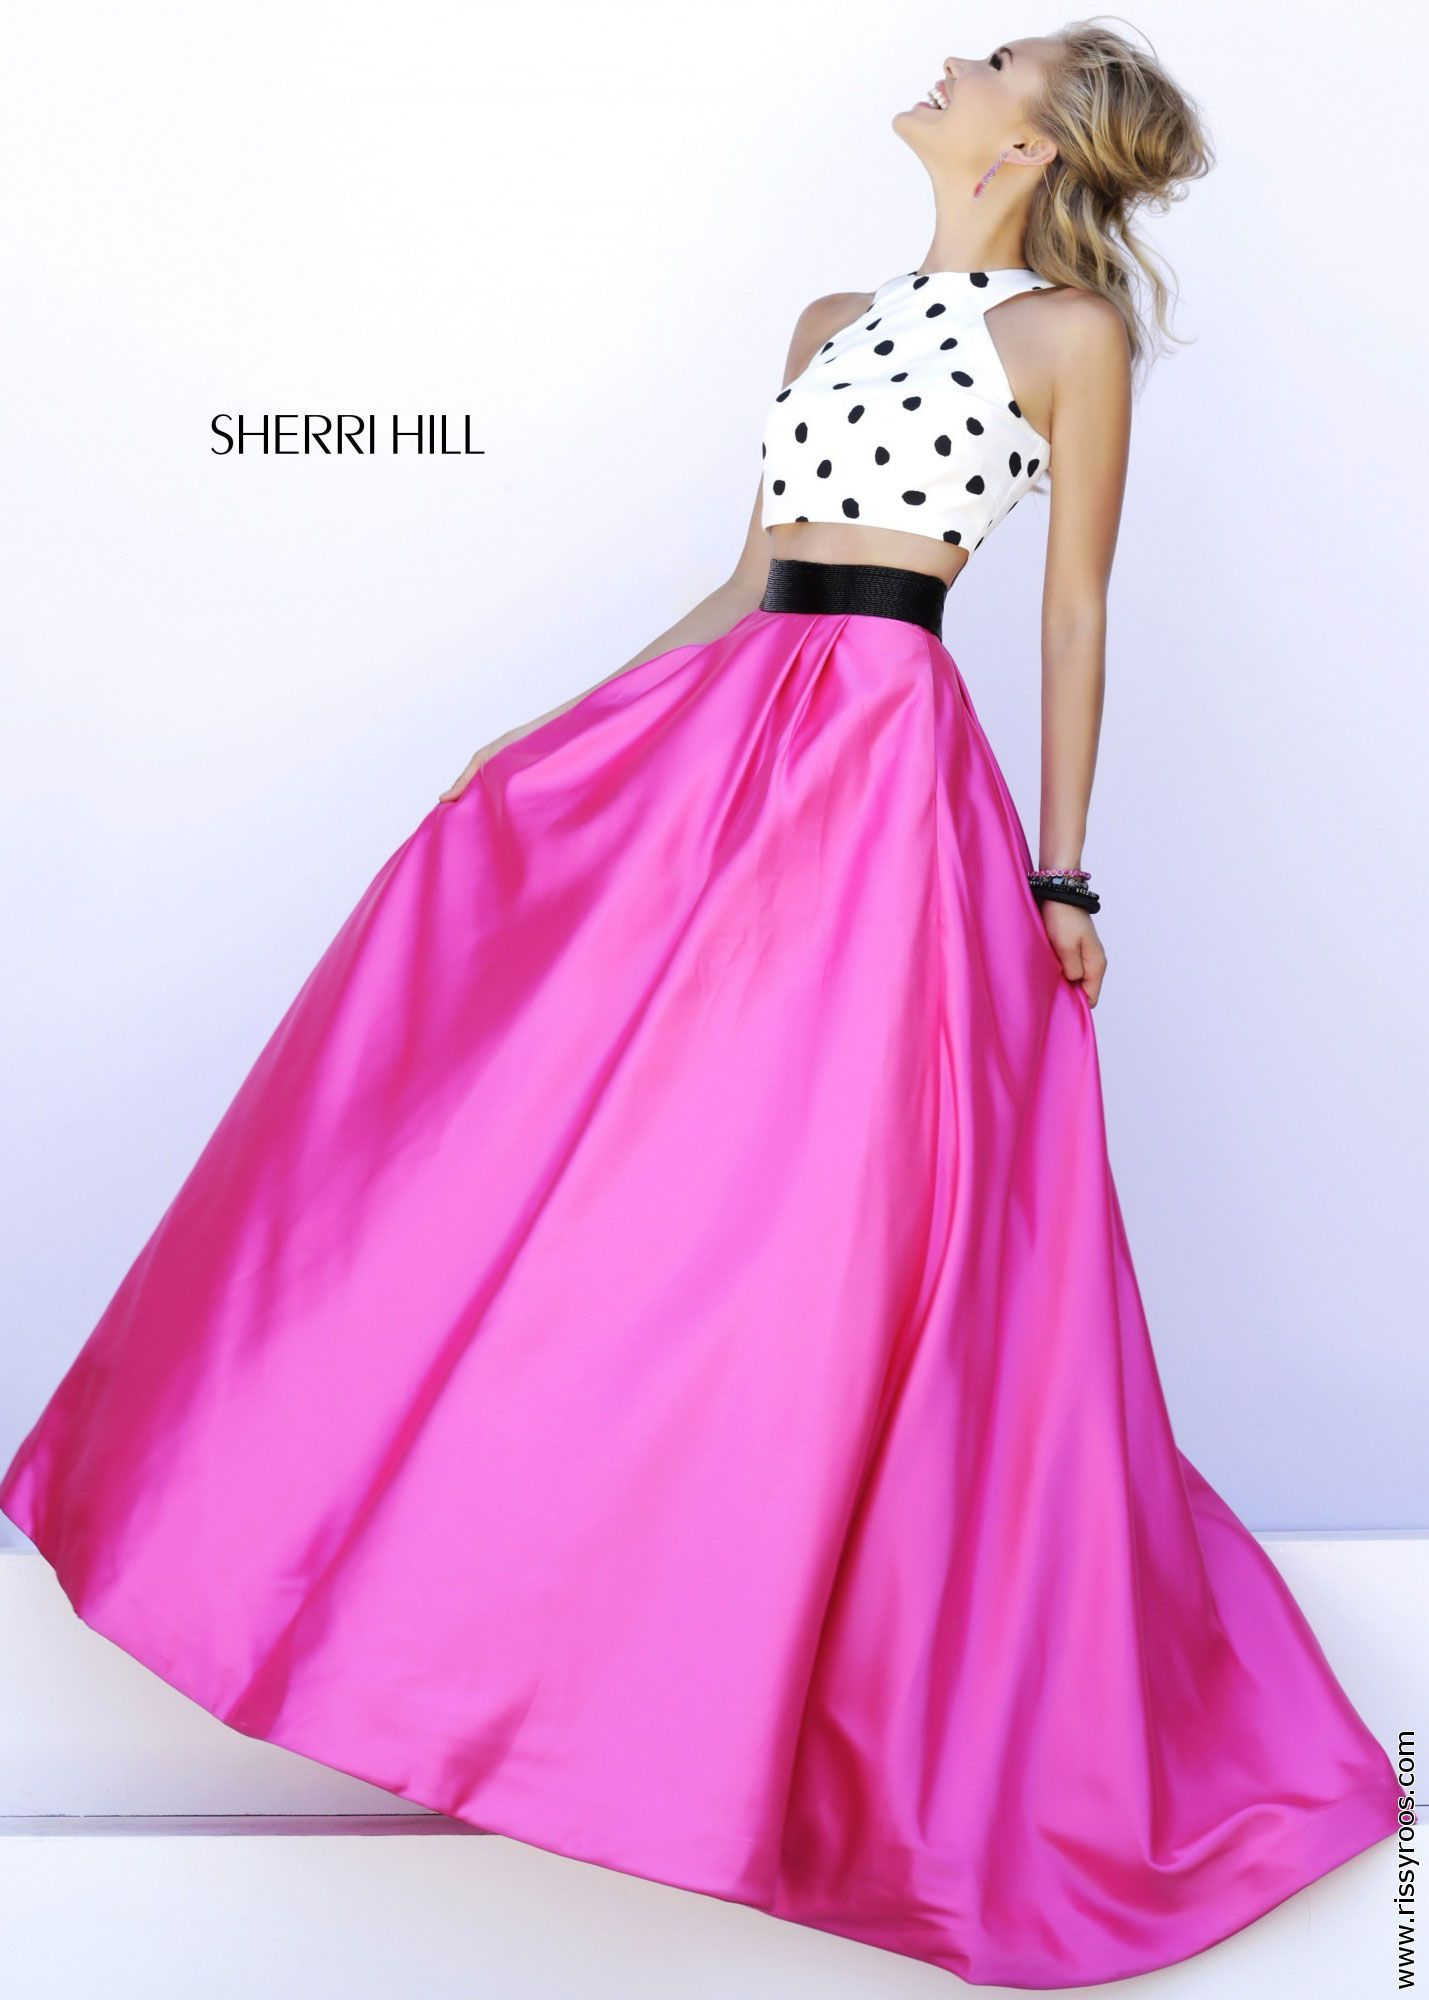 White and Black Polkadot Crop Top and Fuchsia Pink Ball Gown Skirt ...